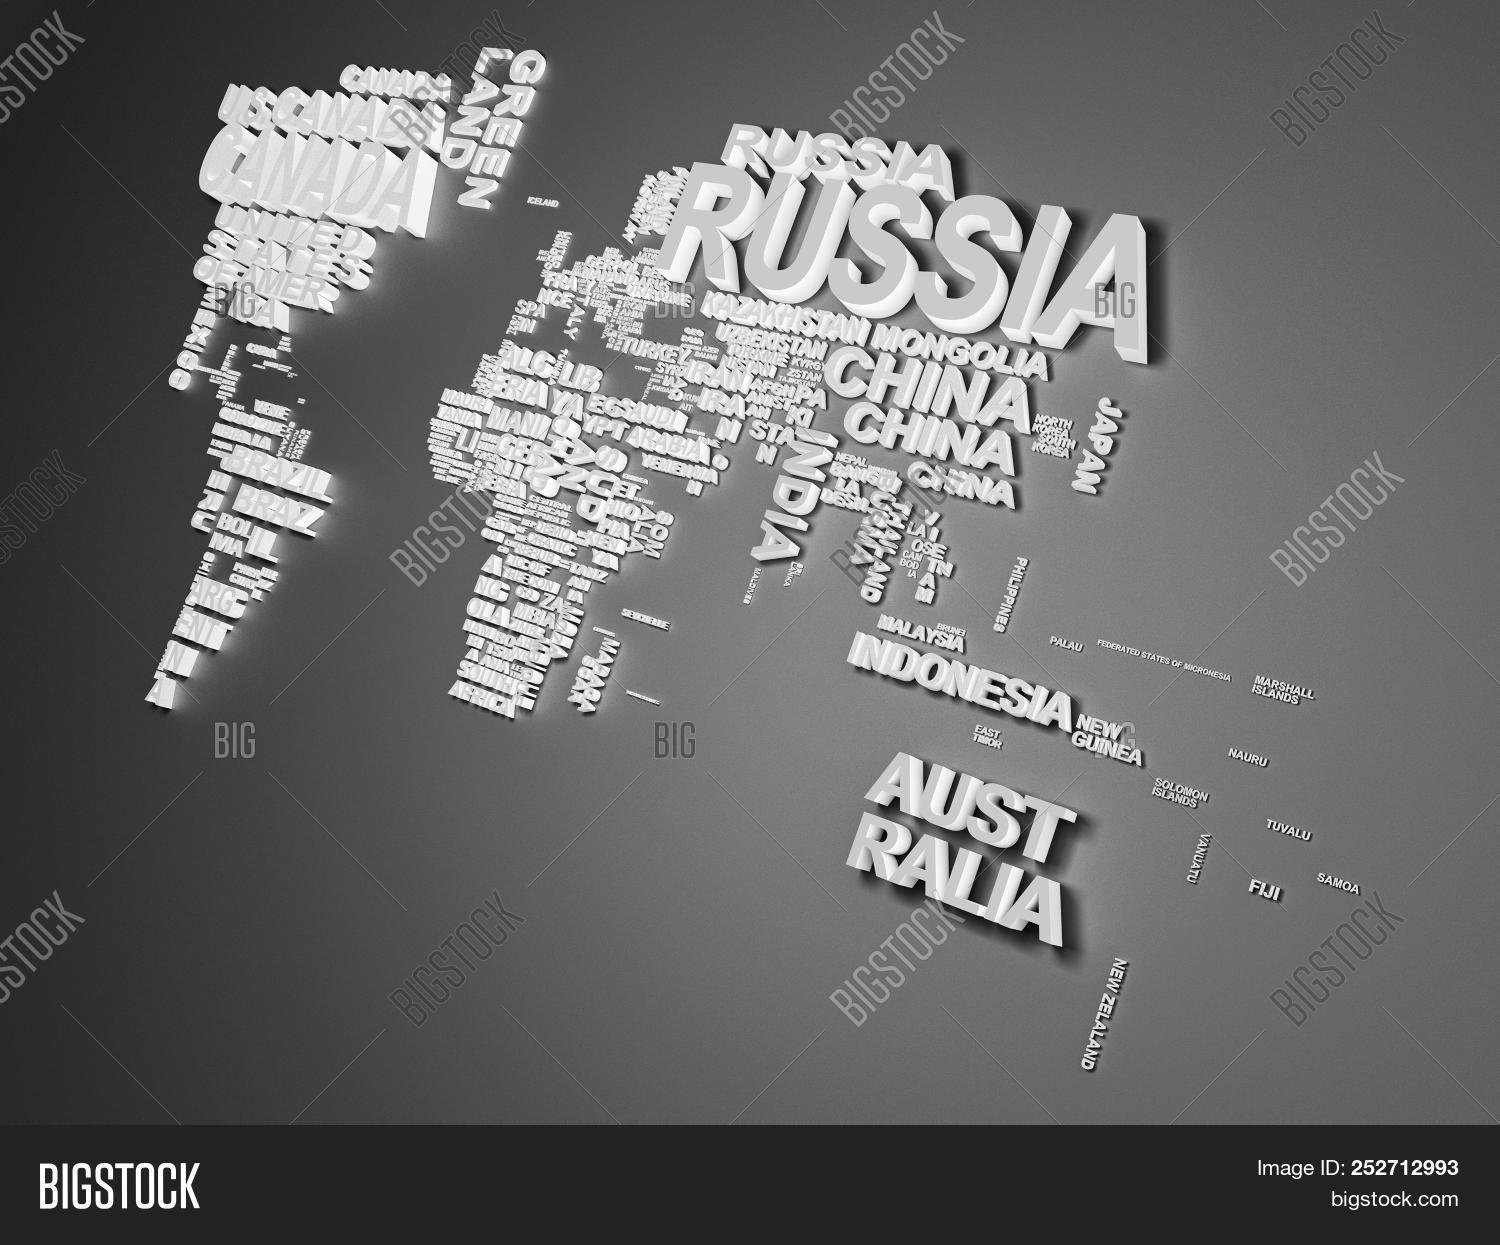 The world map with all states and their names 3d illustration on grey